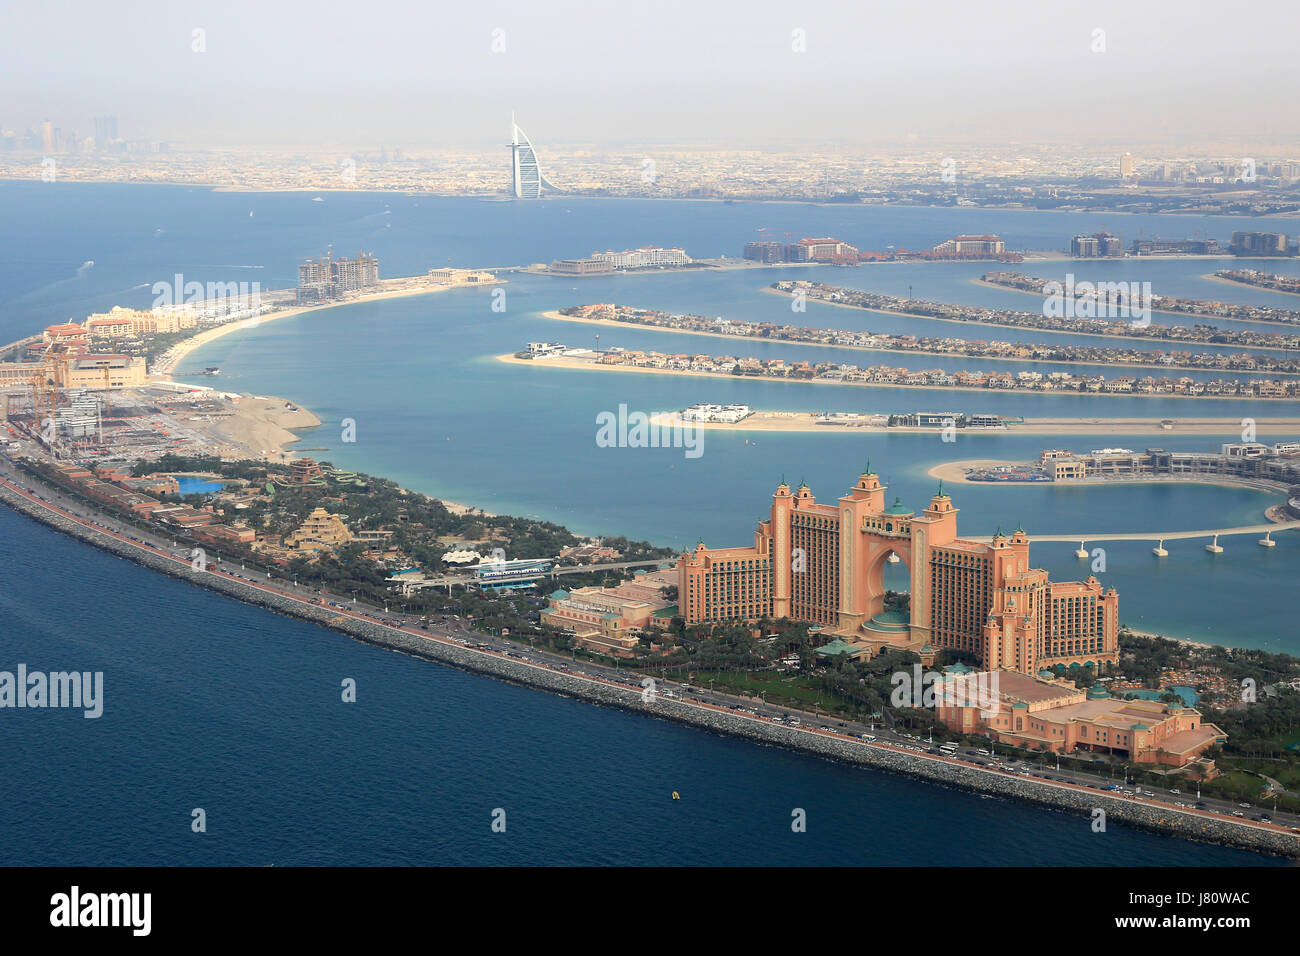 Dubai The Palm Island Atlantis Hotel Burj Al Arab aerial view photography UAE - Stock Image